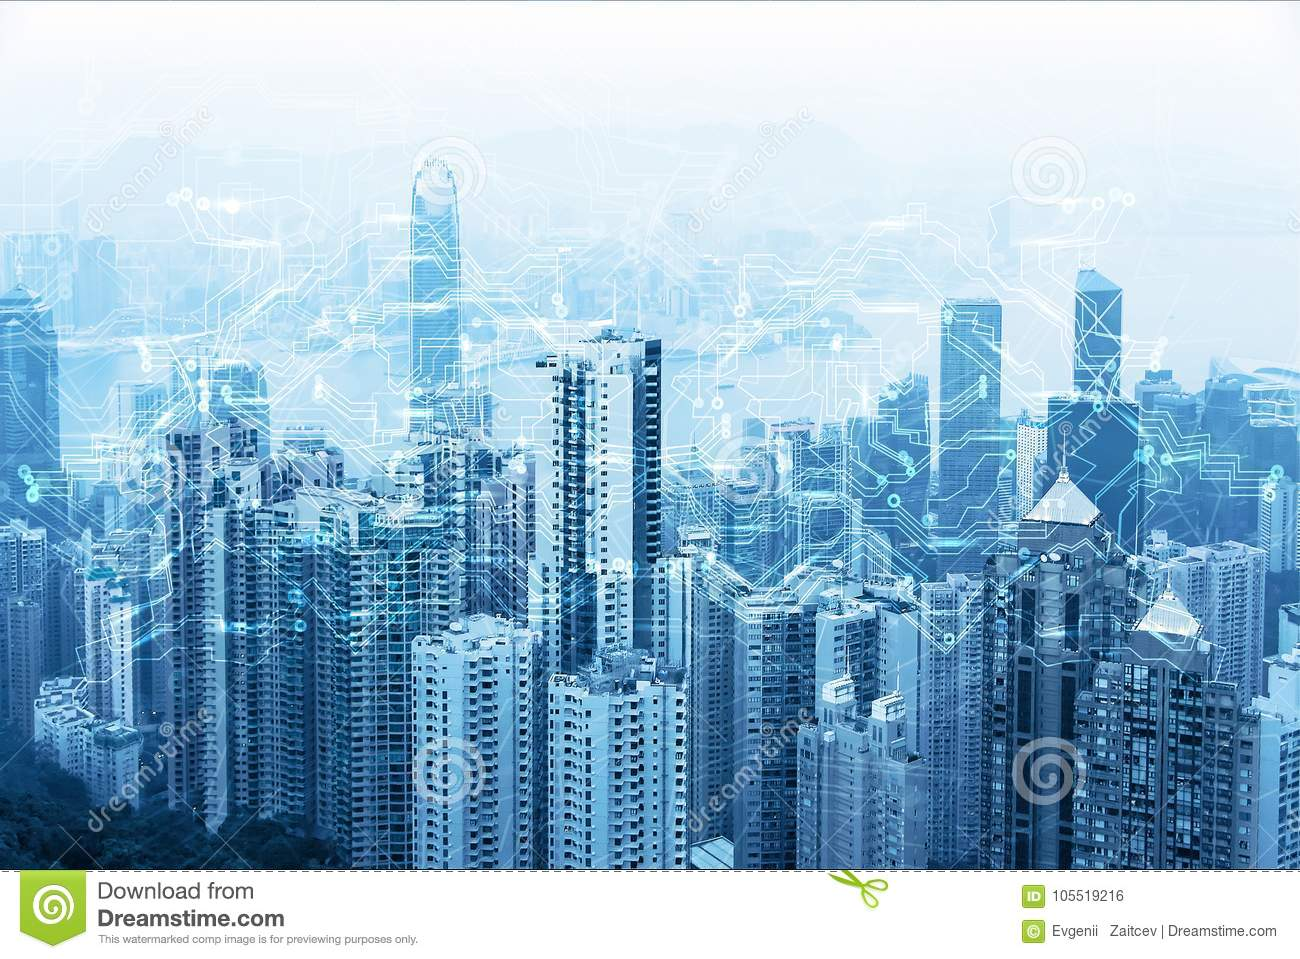 Modern urban skyline. Global communications and networking. Cyberspace in big city. High-speed data and internet connection